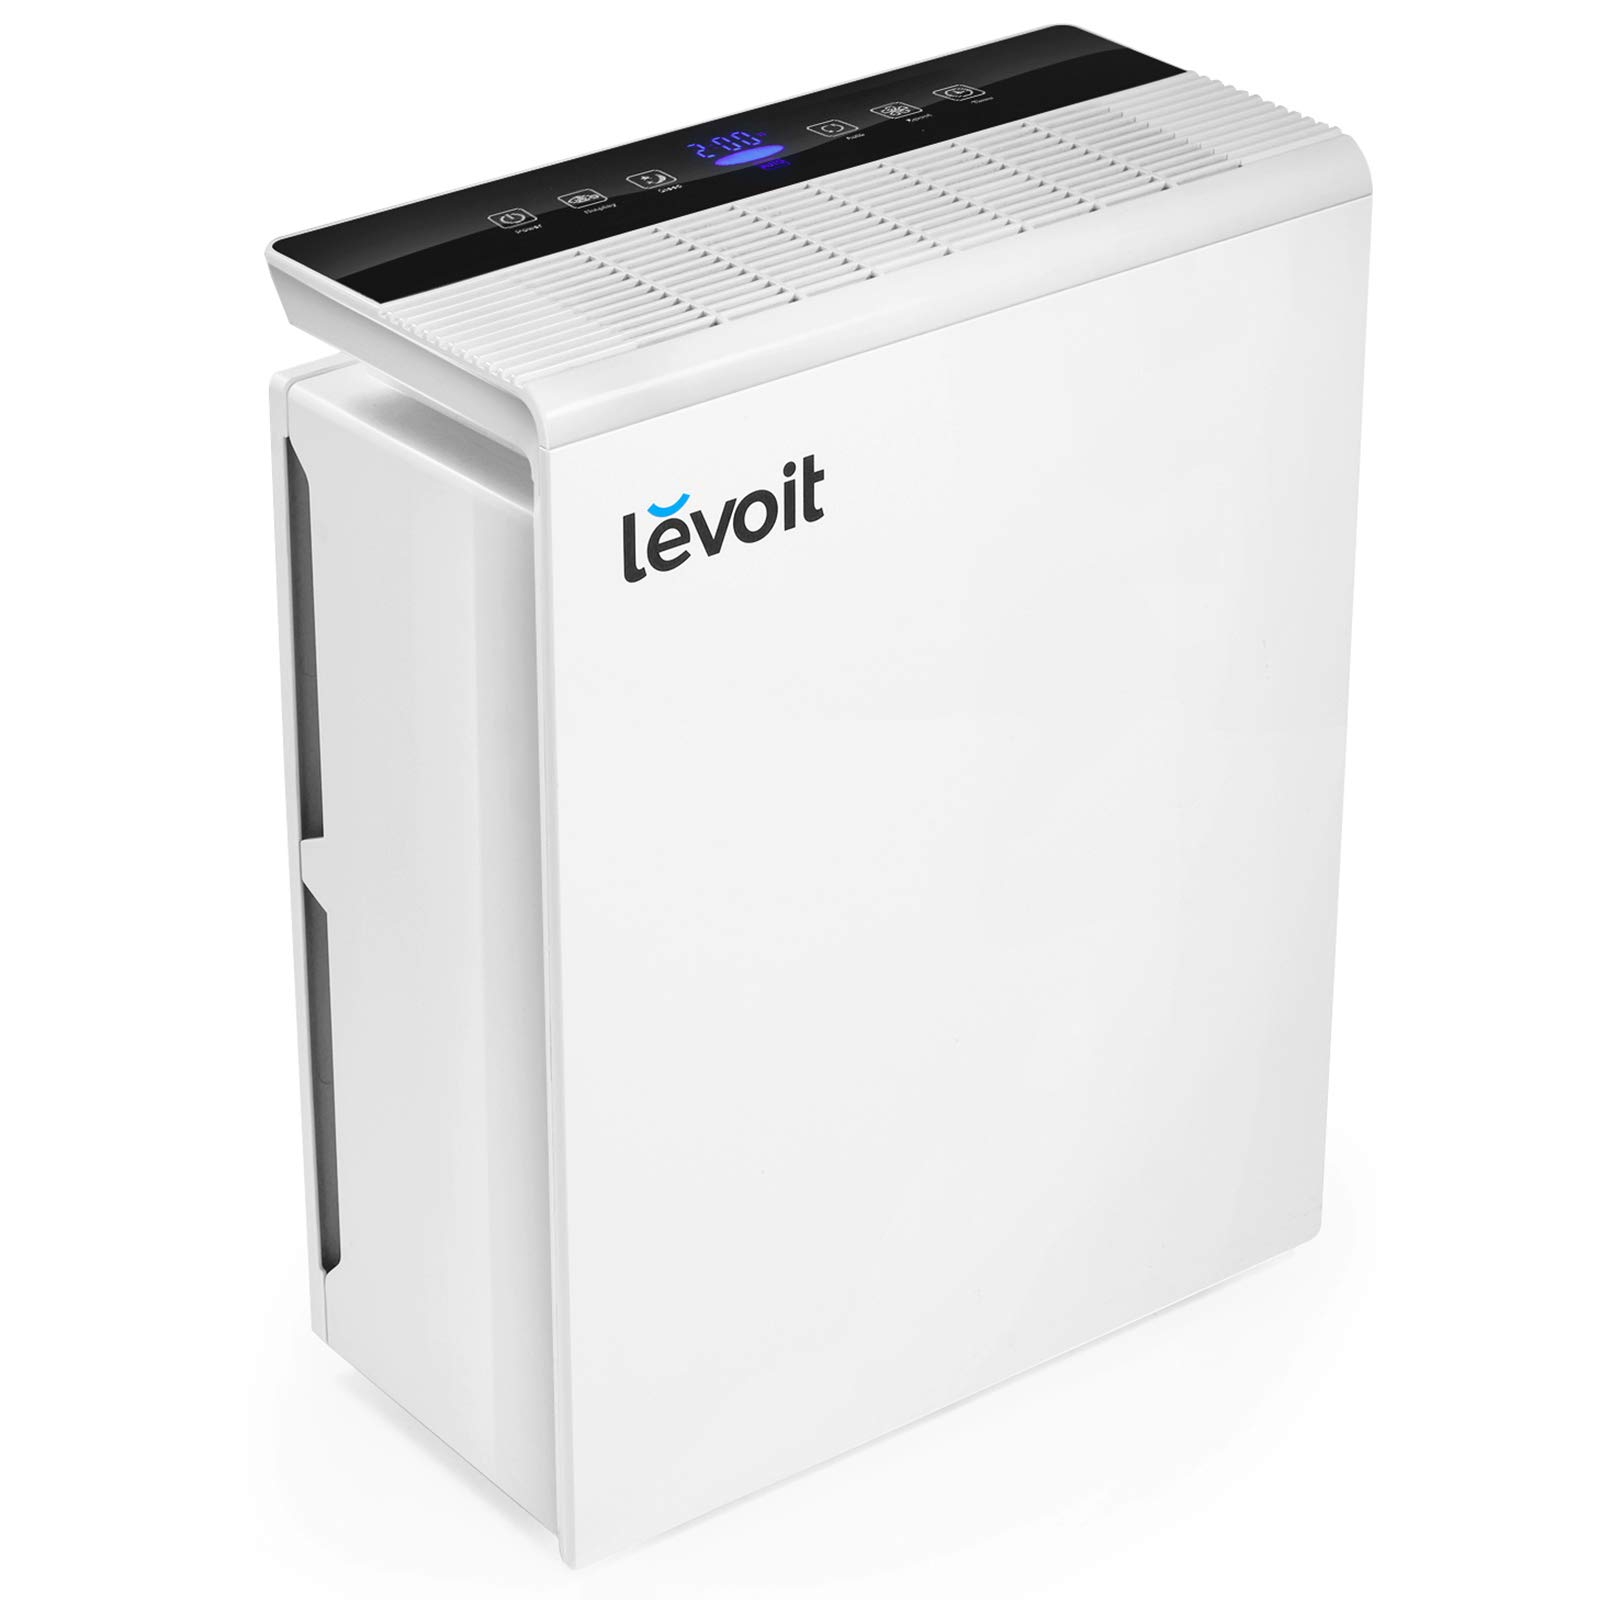 Levoit Air Purifiers for Home 48m² with True HEPA Filter, 1-12H Timer, Auto Mode, Air Quality Monitor, Display Off, Quiet Air Filter for Allergies, Dust, Smoke, Pets, Pollen, Cooking Smell, LV-PUR131 [Energy Class A+]